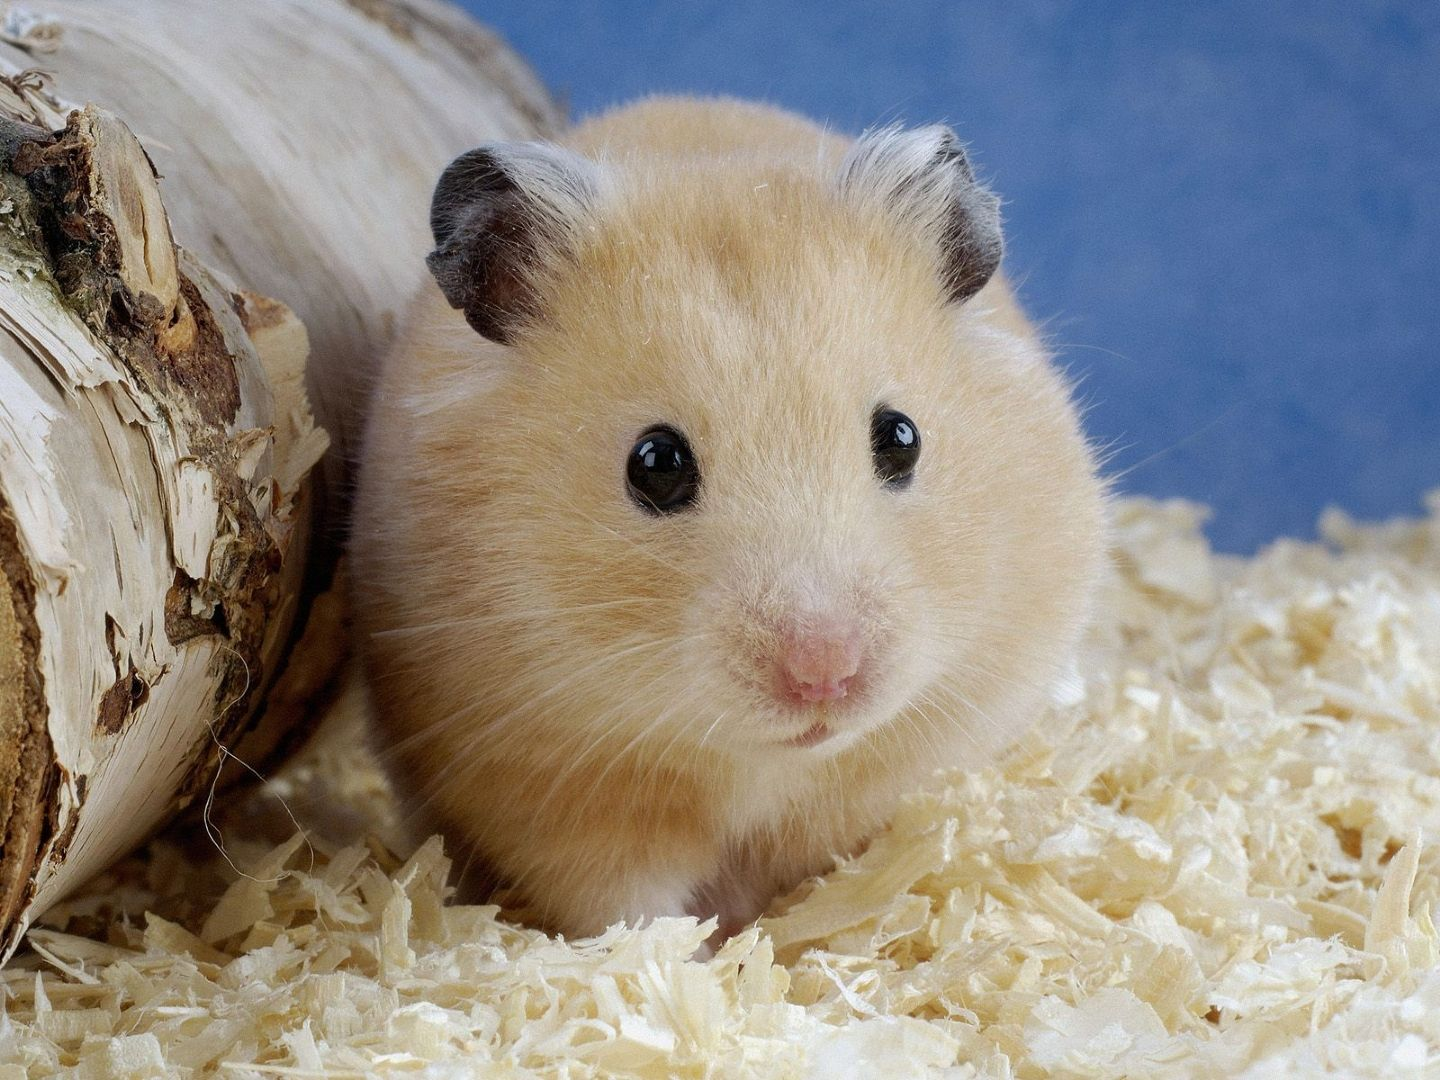 Hamster Wallpapers Fun Animals Wiki Videos Pictures Stories 1440x1080